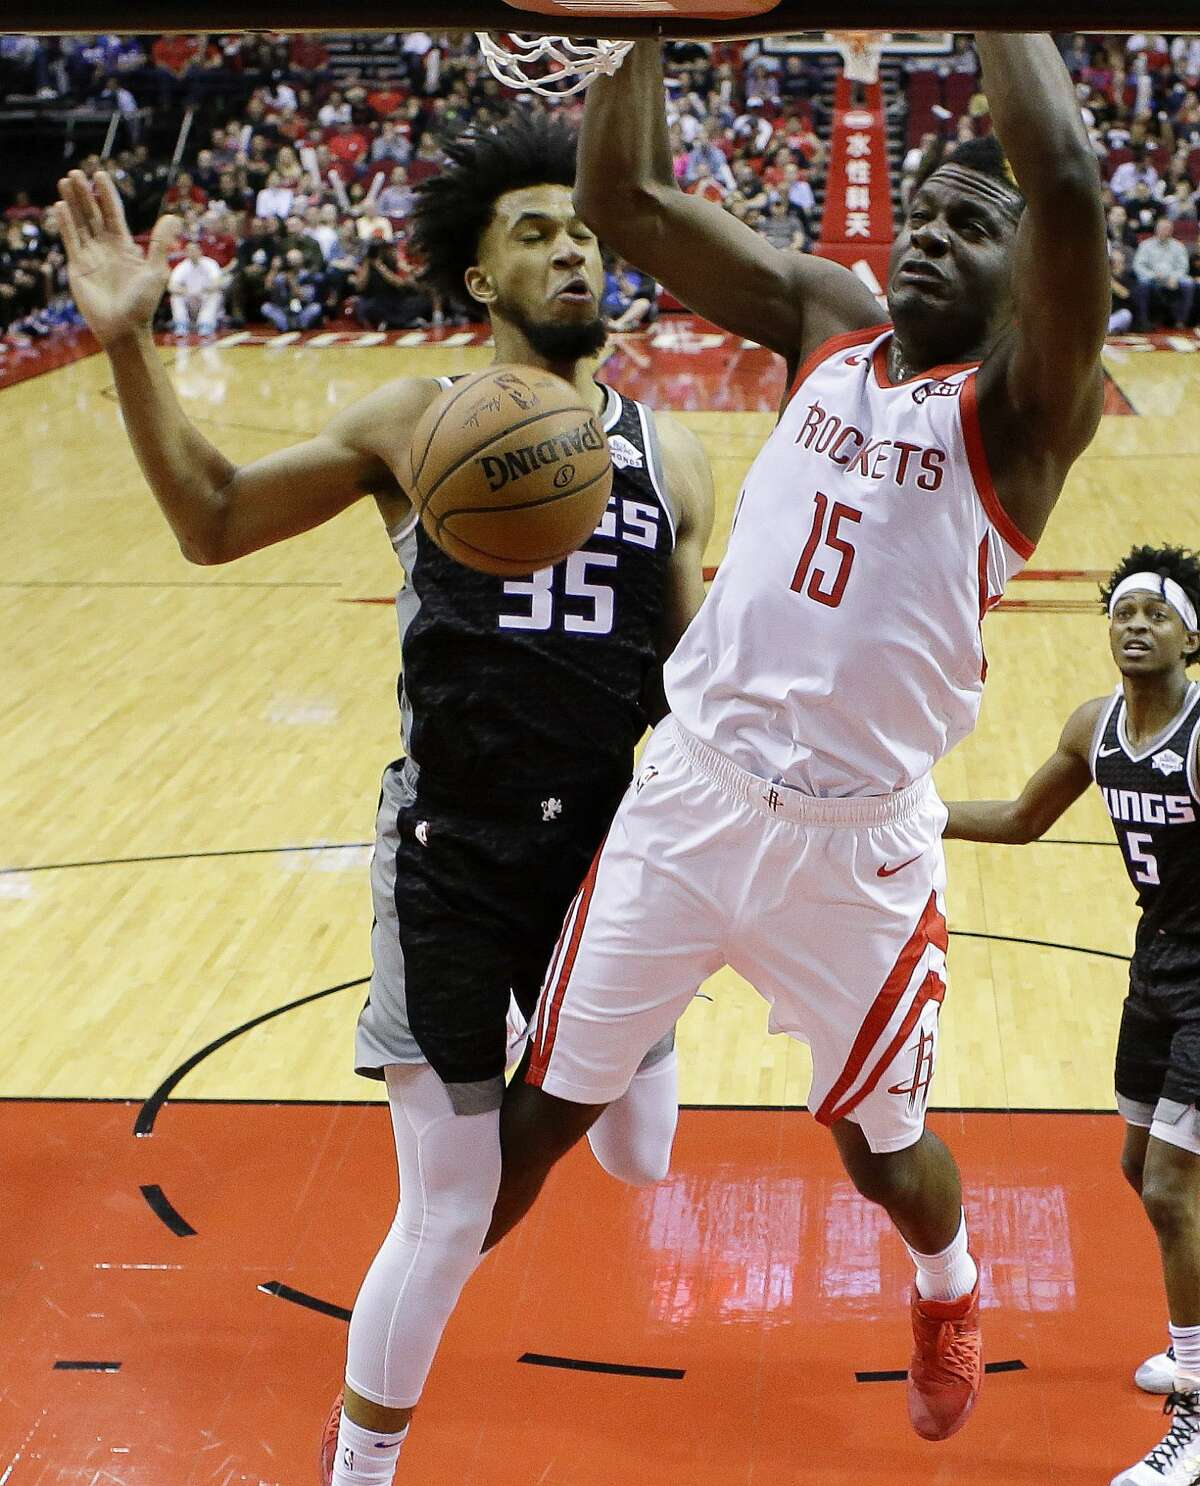 Houston Rockets center Clint Capela (15) dunks as Sacramento Kings forward Marvin Bagley III defends during the first half of an NBA basketball game, Saturday, March 30, 2019, in Houston. (AP Photo/Eric Christian Smith)